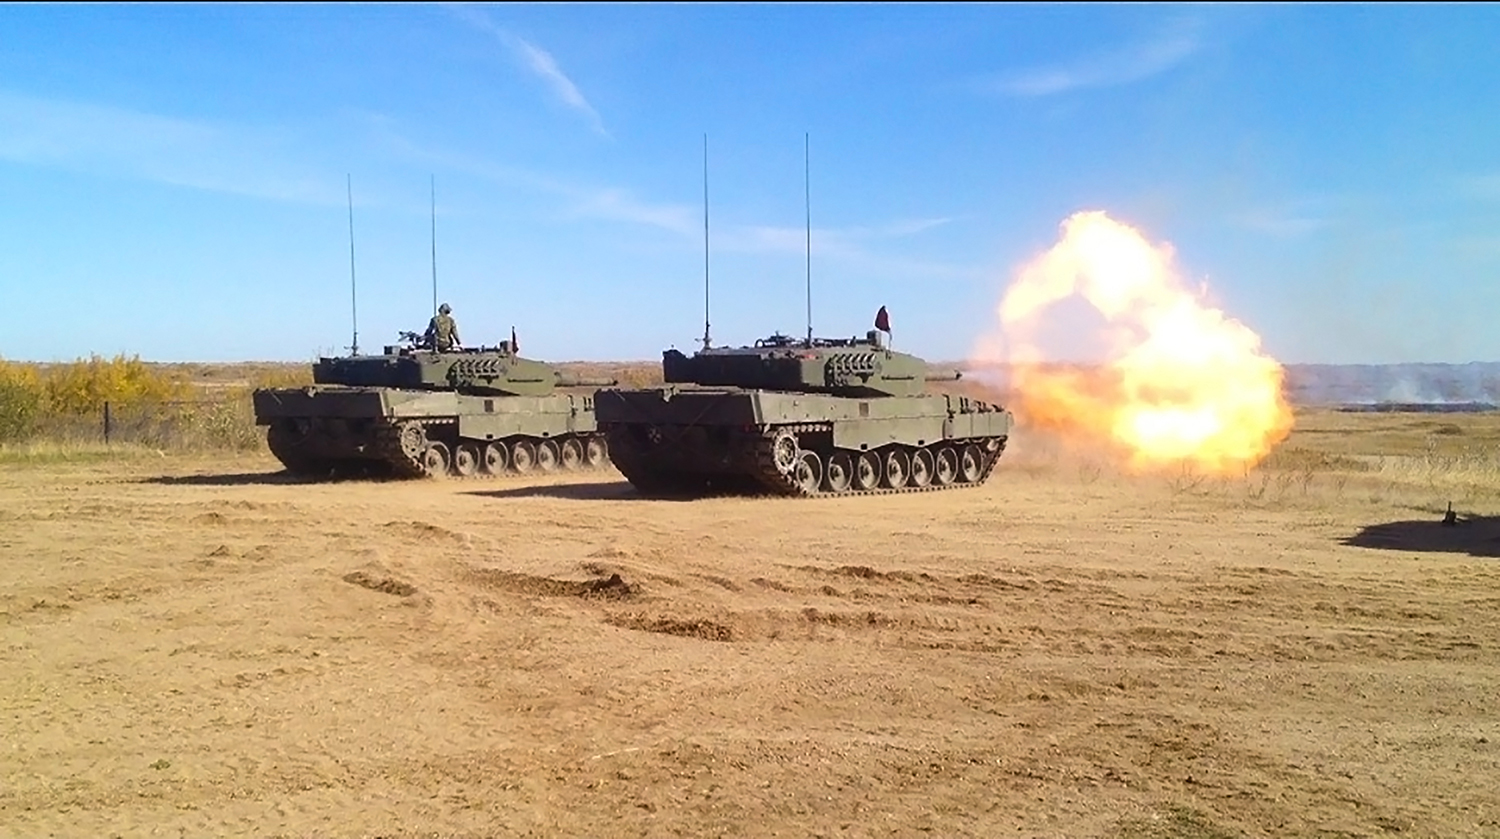 Tanks firing